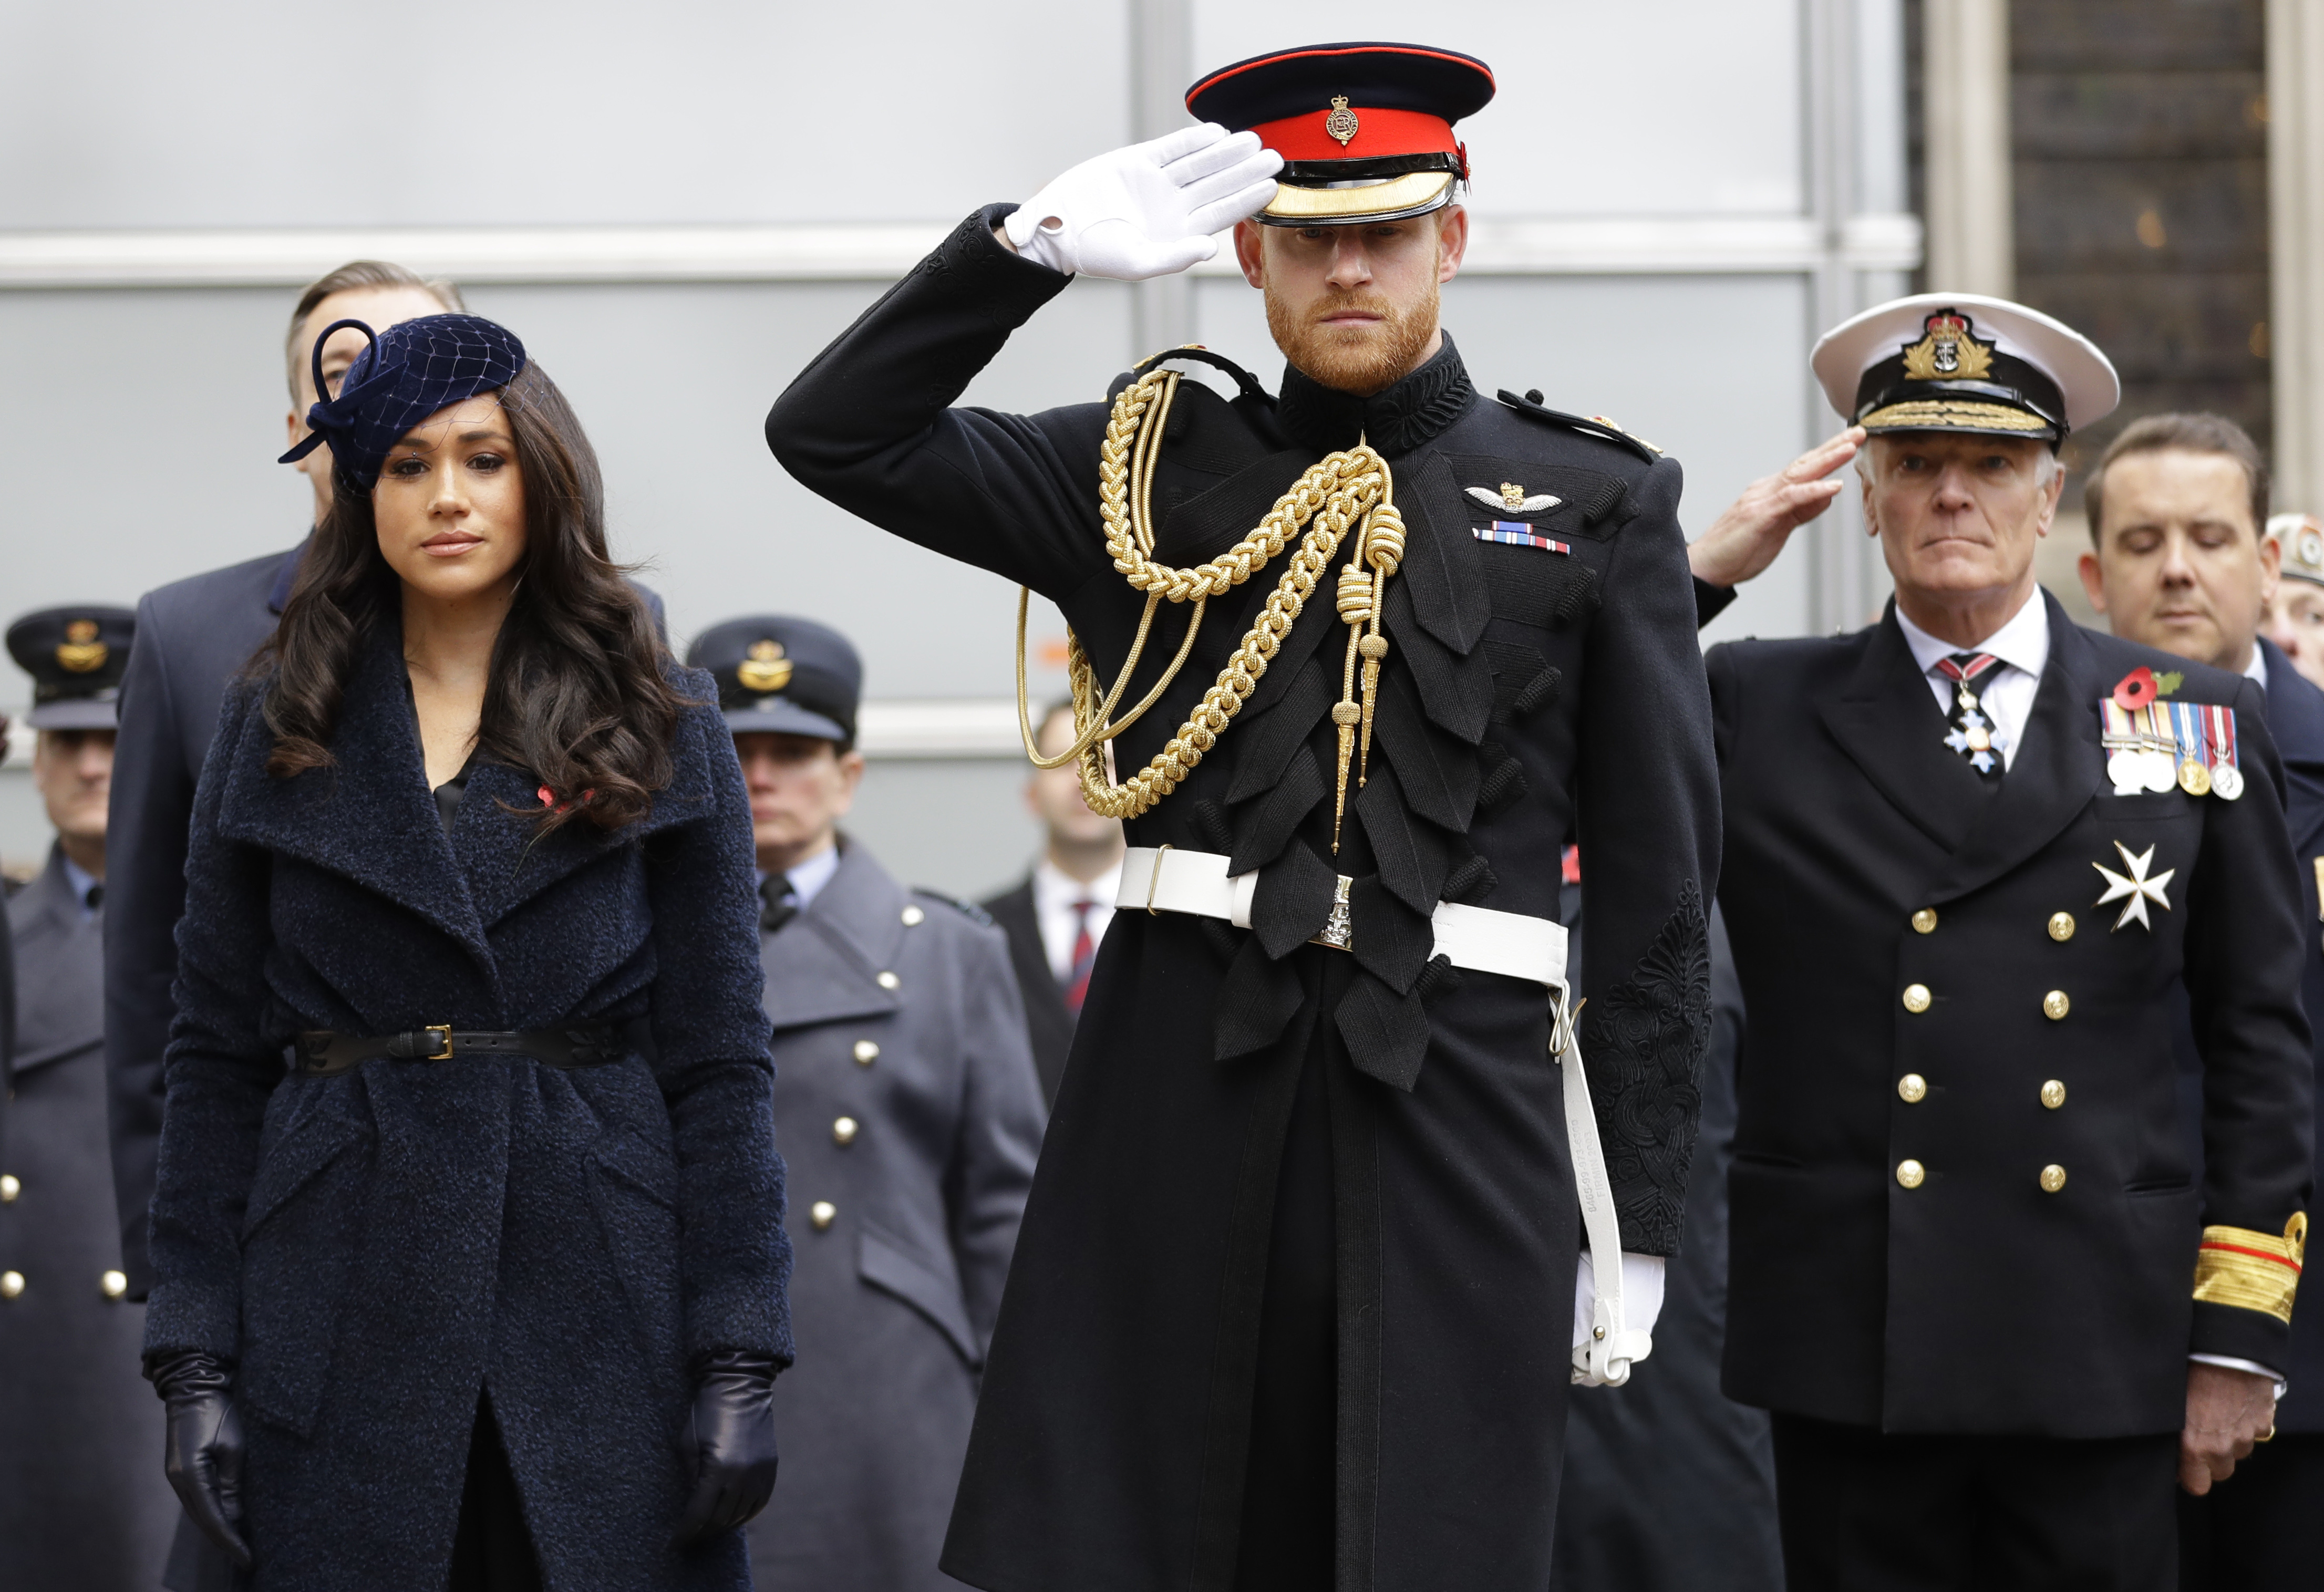 Britain's Prince Harry, Duke of Sussex and his wife Meghan, Duchess of Sussex pay their respects after laying a Cross of Remembrance in front of wooden crosses from the Graves of Unknown British Soldiers from the First and Second World Wars, during their visit to the Field of Remembrance at Westminster Abbey in central London on November 7, 2019. - The Field of Remembrance is organised by The Poppy Factory, and has been held in the grounds of Westminster Abbey since November 1928, when only two Remembrance Tribute Crosses were planted. In the run-up to Armistice Day, many Britons wear a paper red poppy -- symbolising the poppies which grew on French and Belgian battlefields during World War I -- in their lapels. (Photo by KIRSTY WIGGLESWORTH/POOL/AFP via Getty Images)